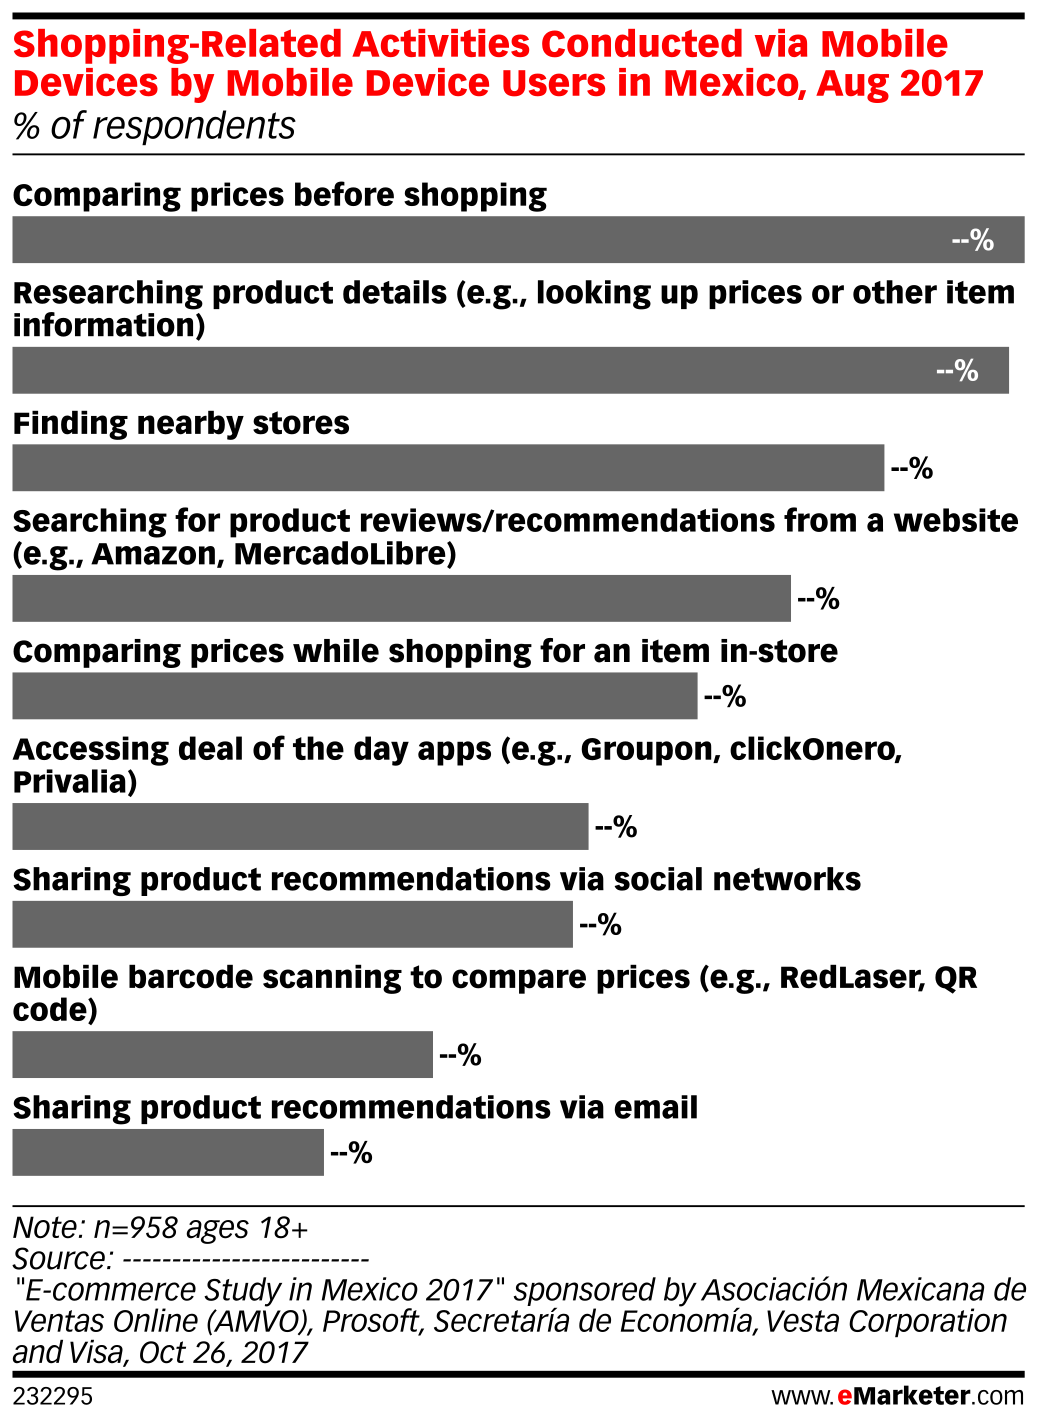 Shopping-Related Activities Conducted via Mobile Devices by Mobile Device Users in Mexico, Aug 2017 (% of respondents)